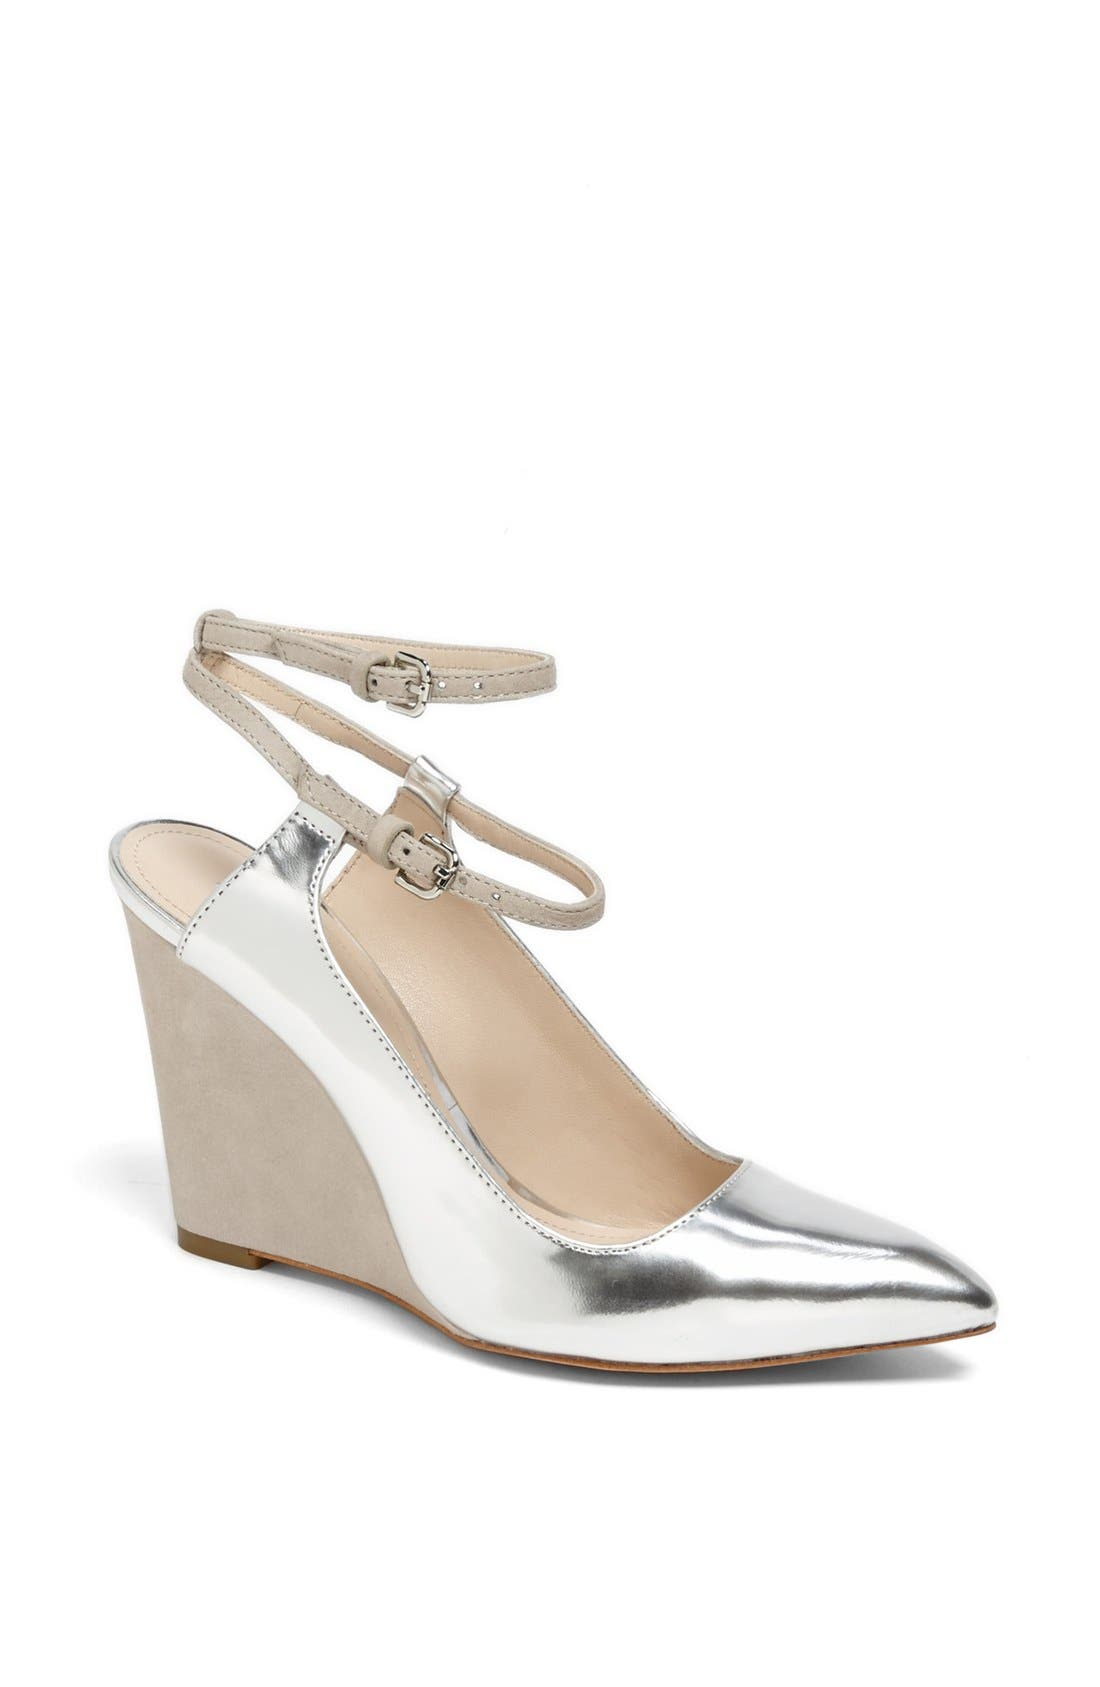 Alternate Image 1 Selected - COACH 'Ollie' Pointy Toe Wedge Pump